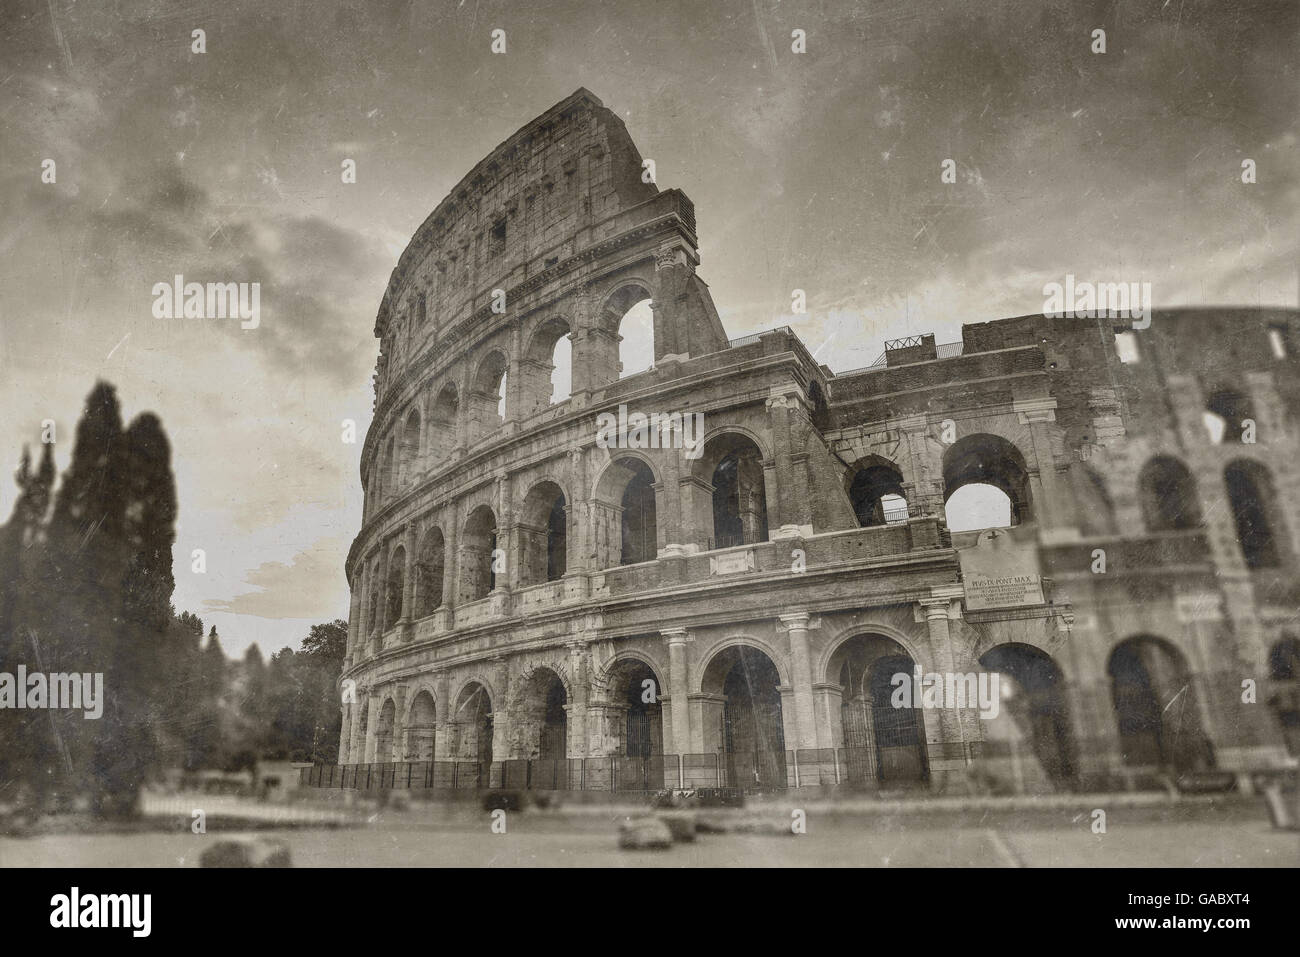 Retro tone mapped aged image of the Roman Colosseum amphitheatre in sepia tones for vintage travel and sightseeing - Stock Image